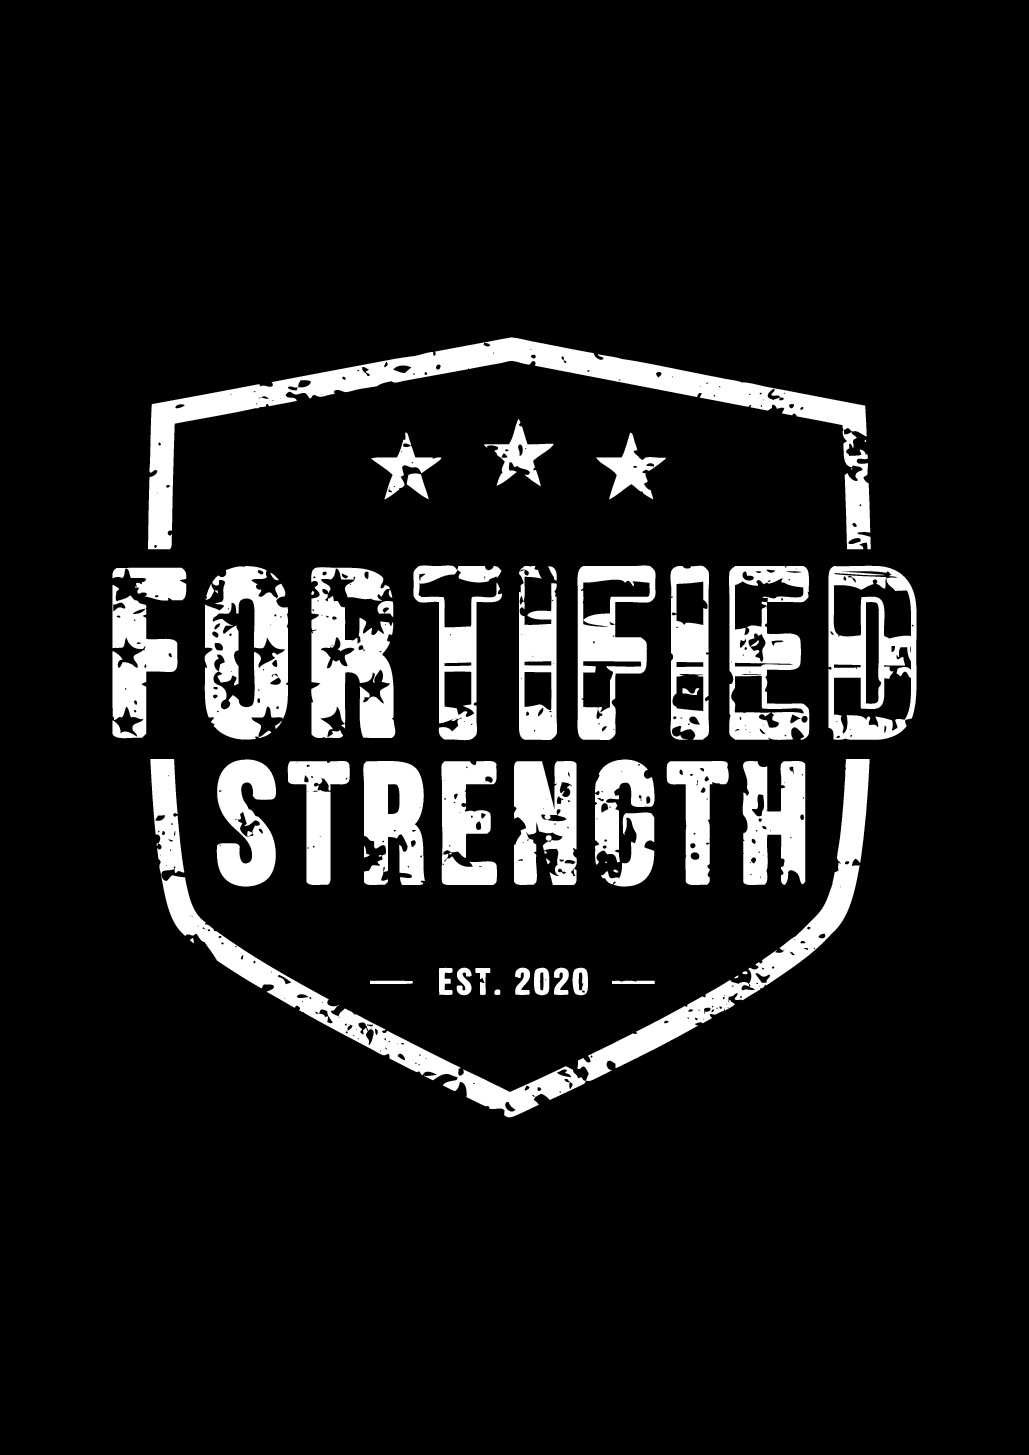 Youth Nonprofit Weightlifting Fundraiser